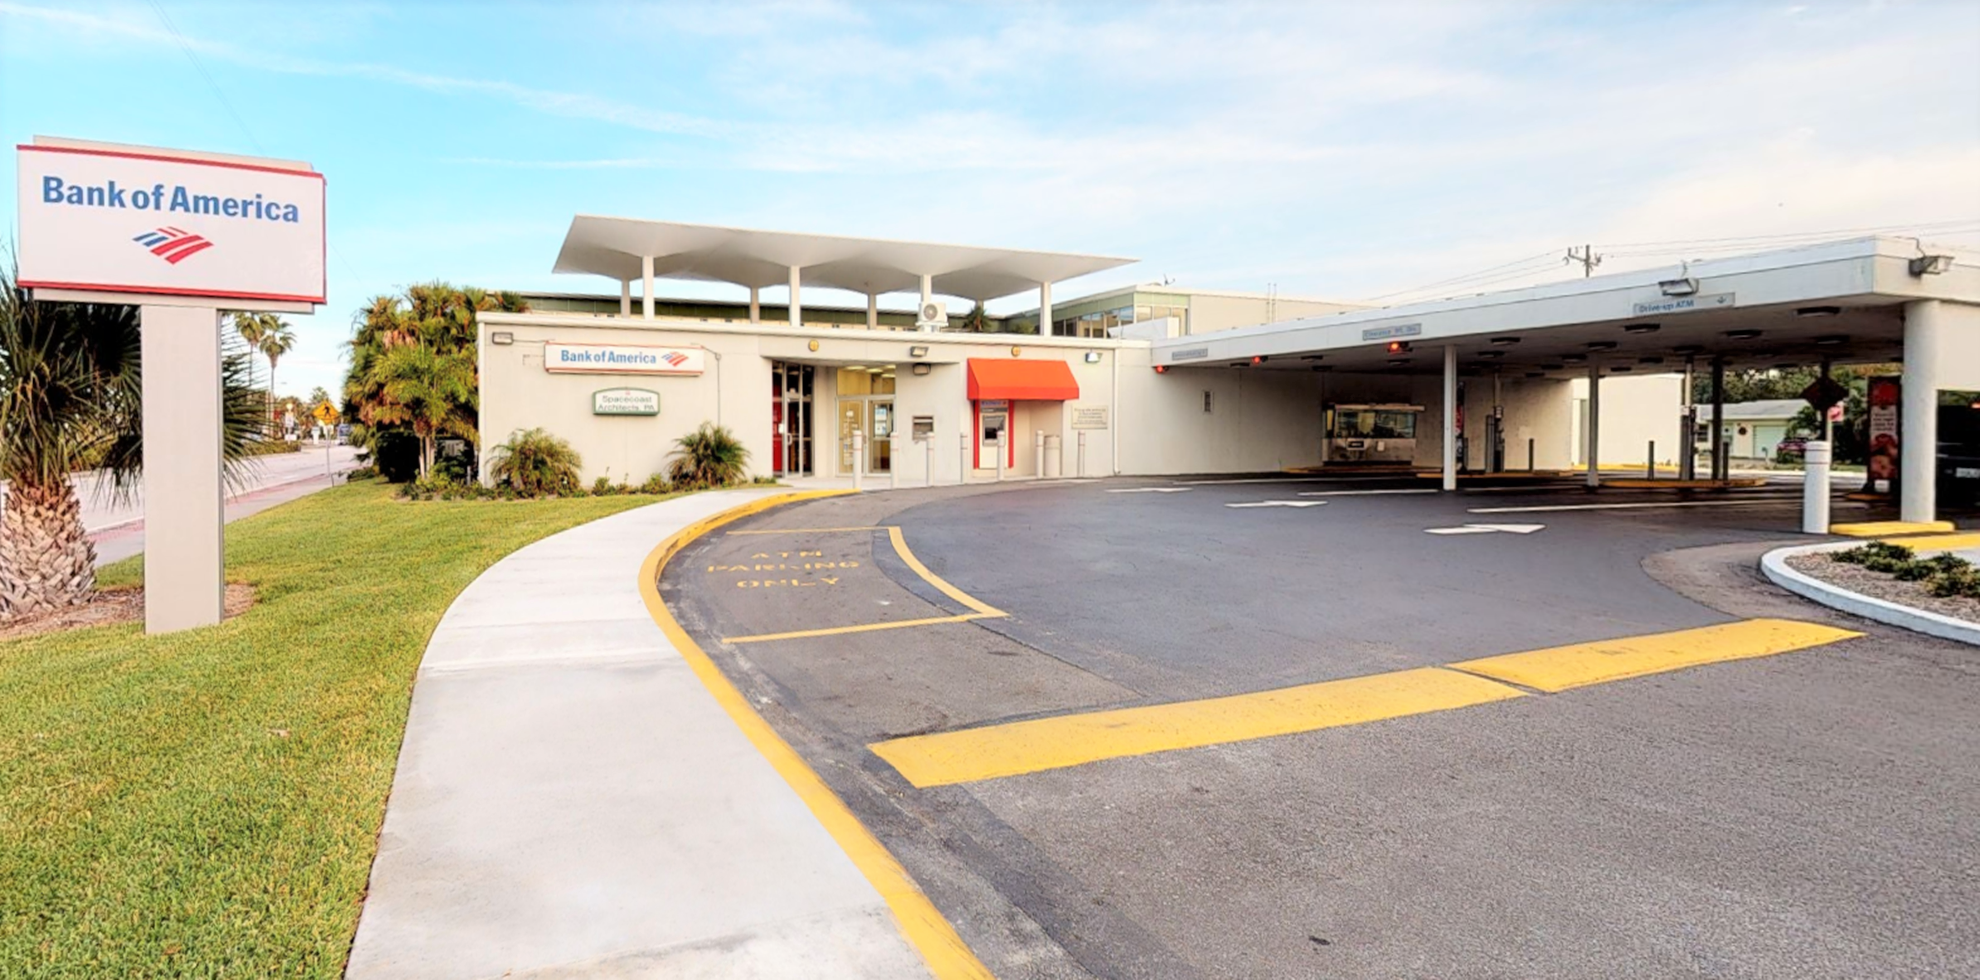 Bank of America financial center with drive-thru ATM | 333 5th Ave, Indialantic, FL 32903